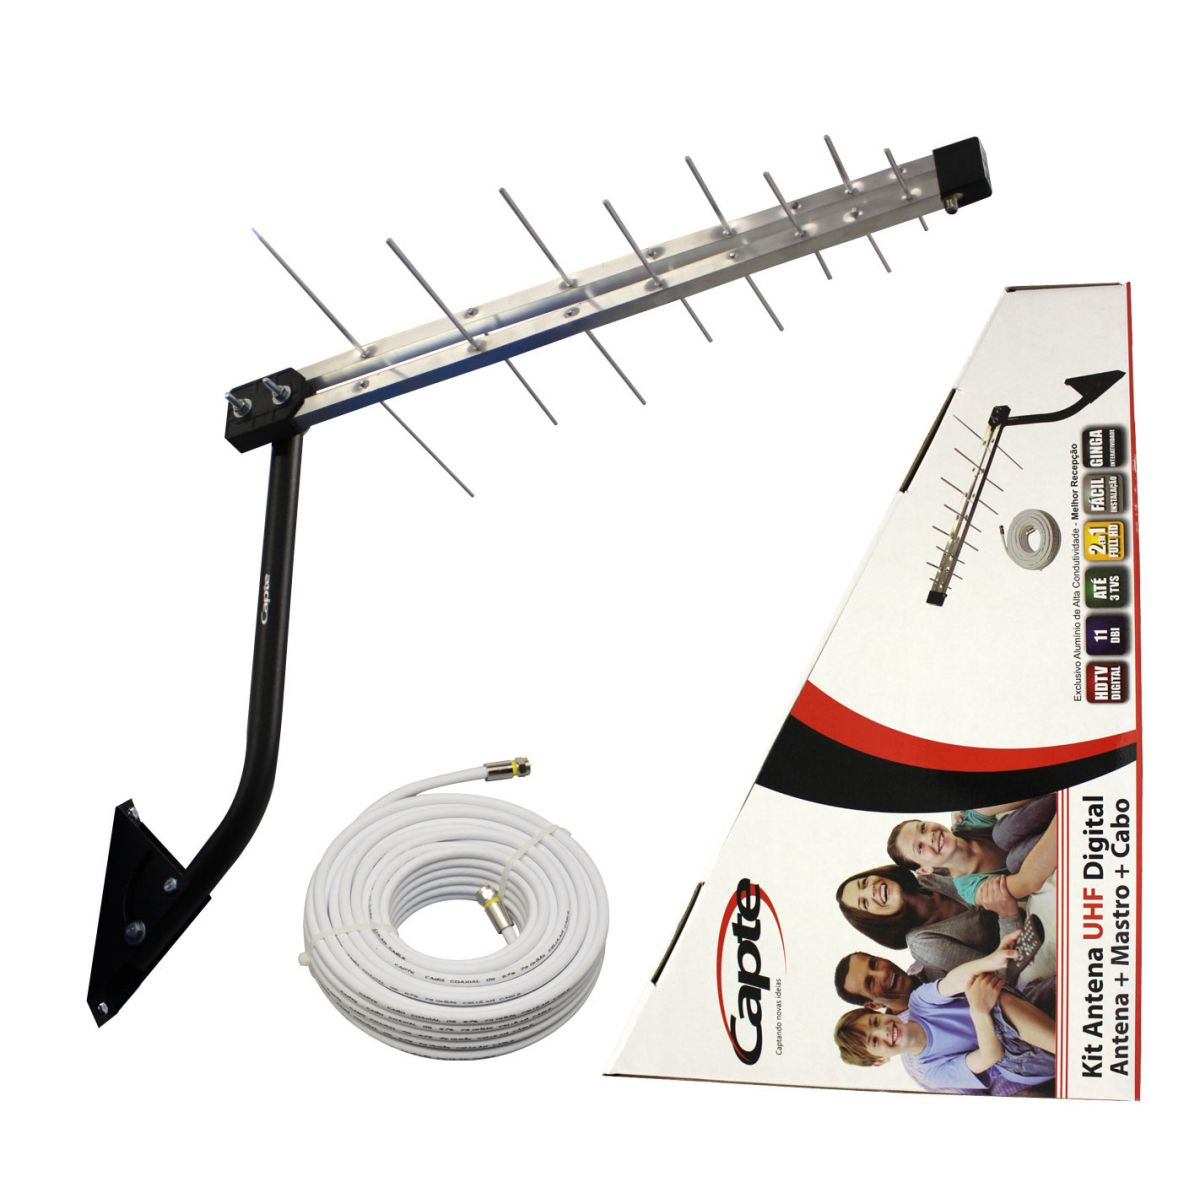 Kit Antena Digital para TV Log 16 com Mastro 50 cm e Cabo coaxial Capte 10 metros